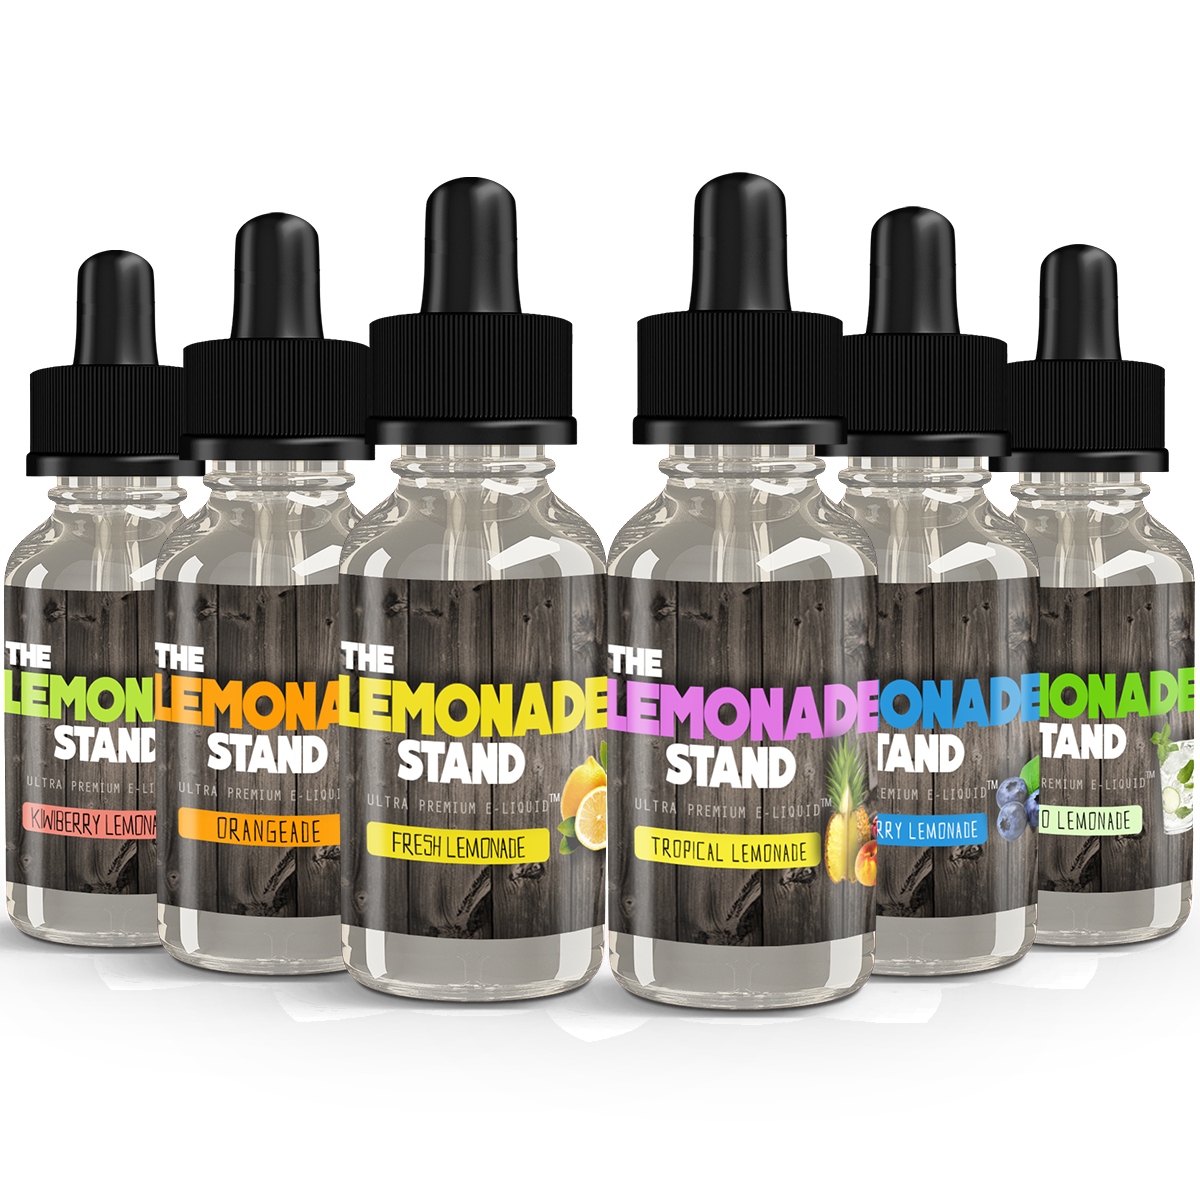 Lemonade stand ejuice png. The e liquid discounted